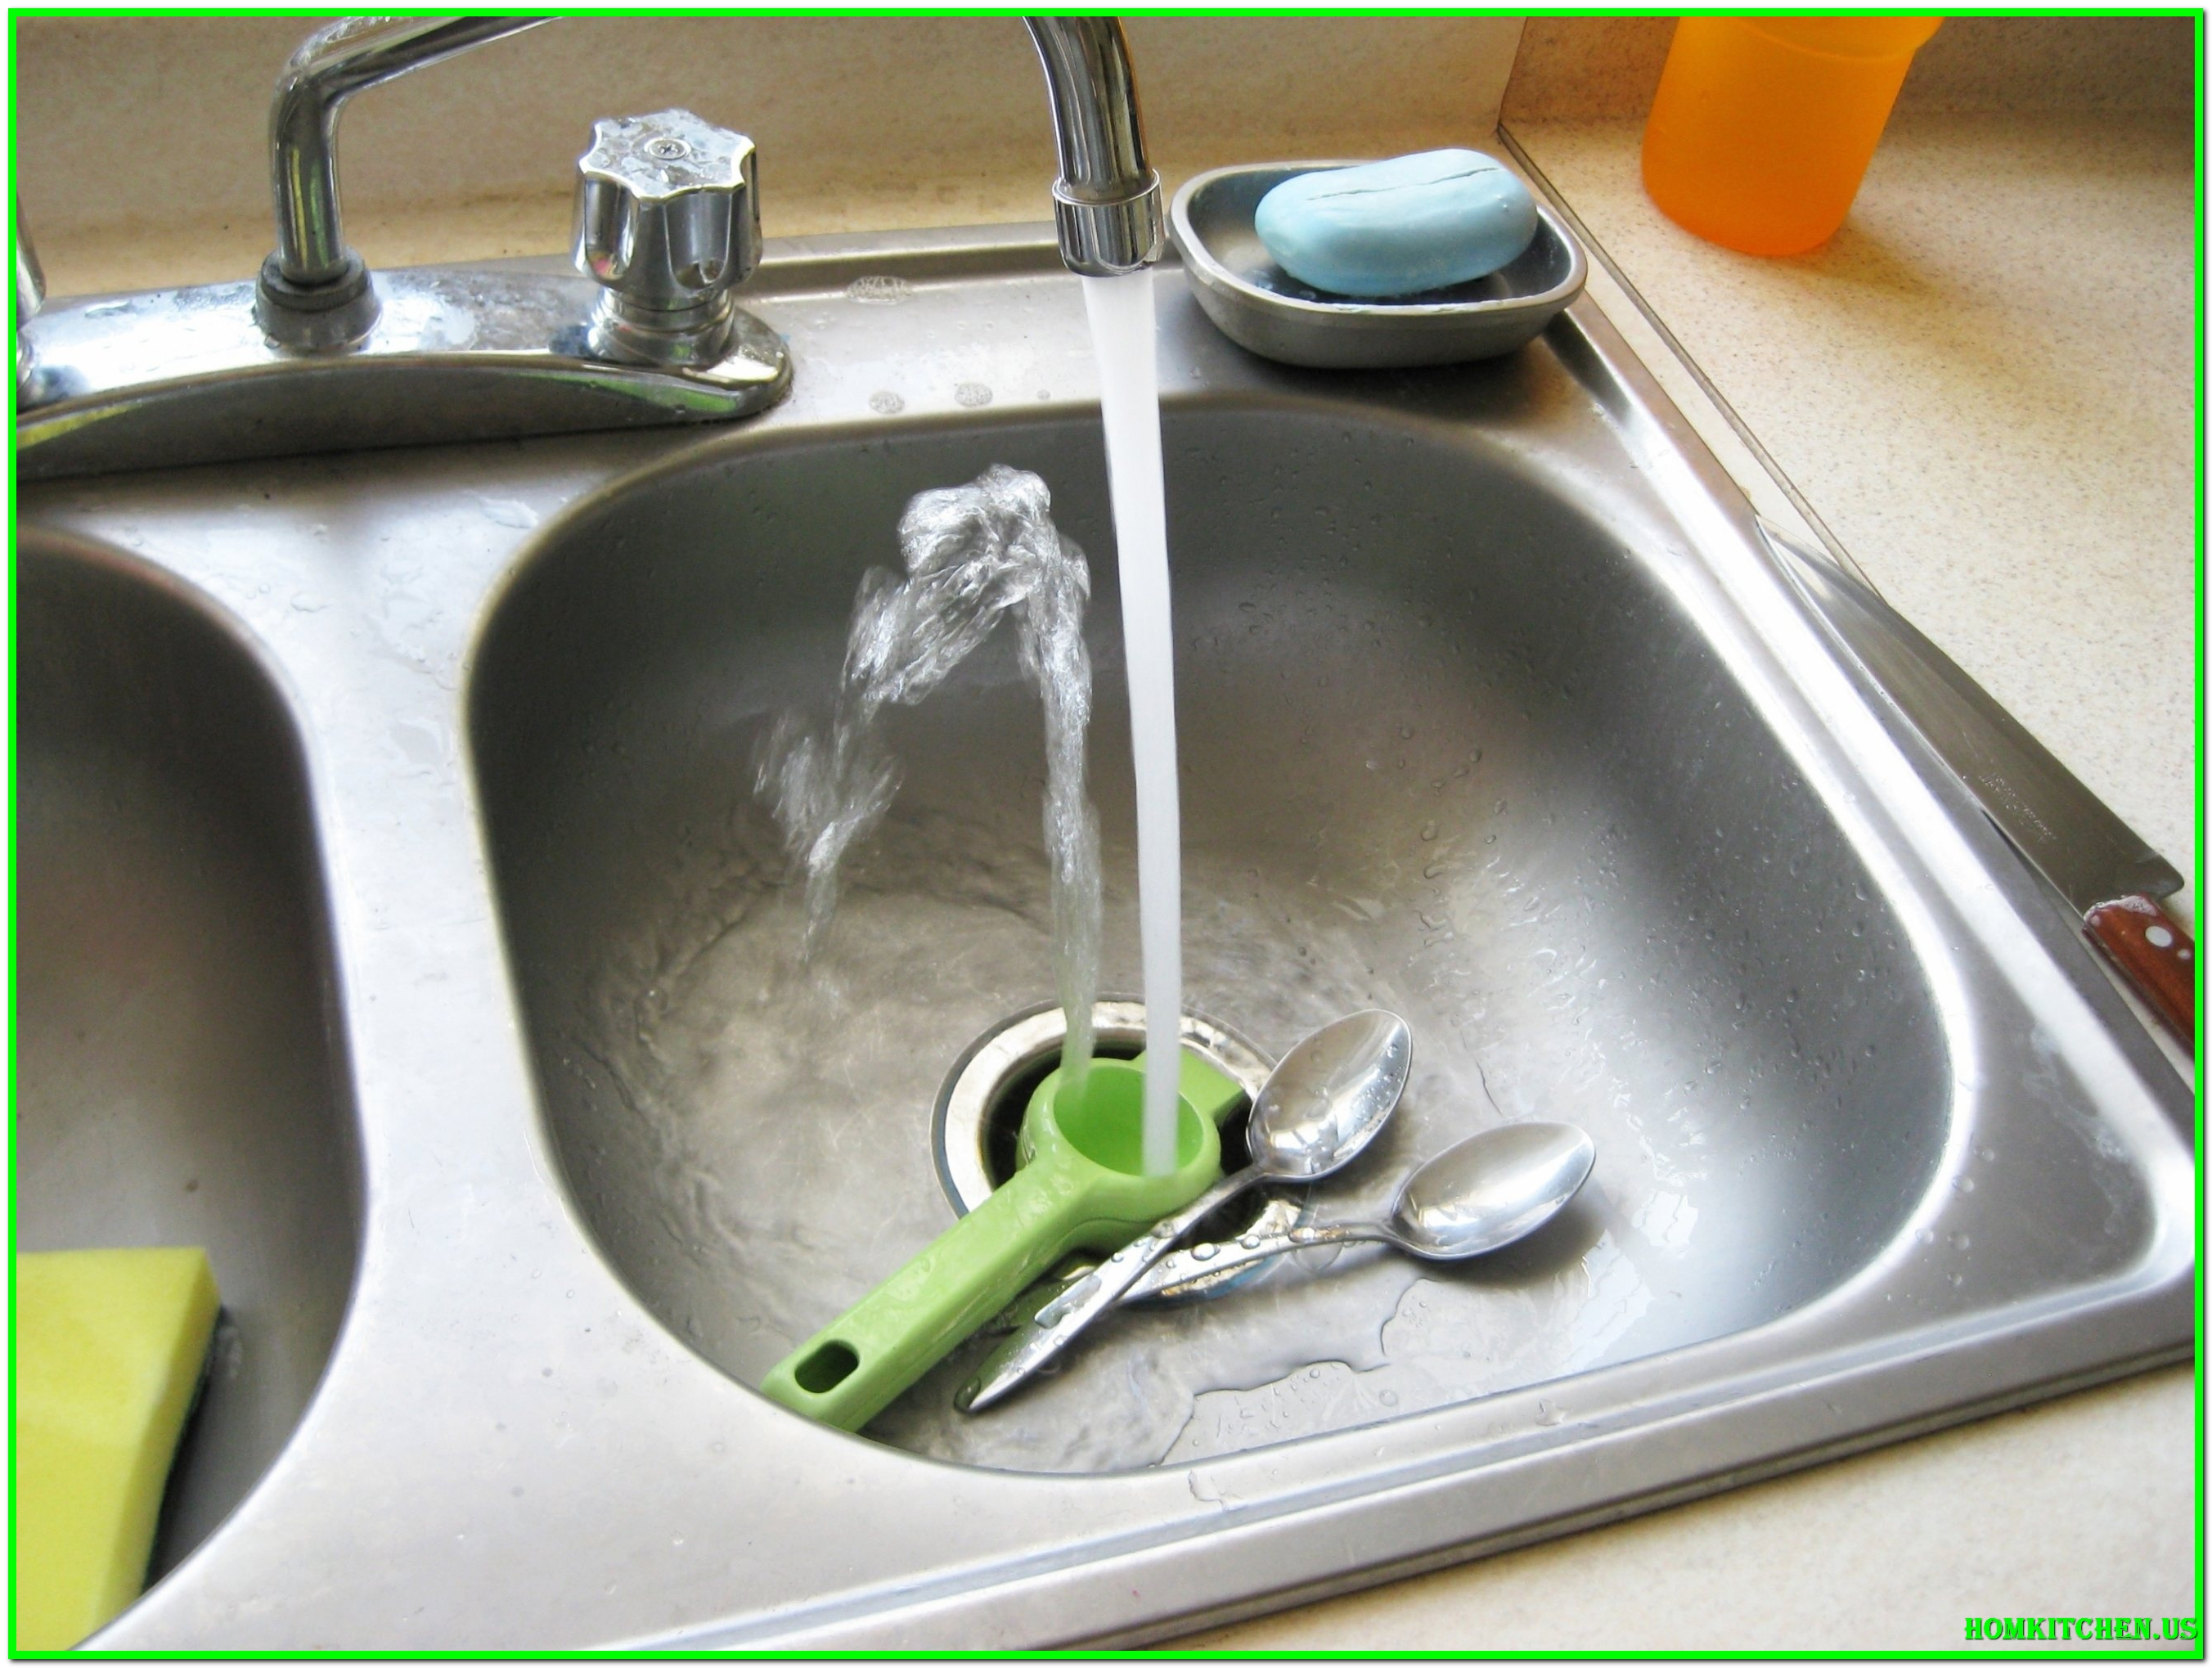 Cool Kitchen : Kitchen Sink Blockage Clearing Blocked Sink Solution Slow throughout How To Unclog A Double Kitchen Sink